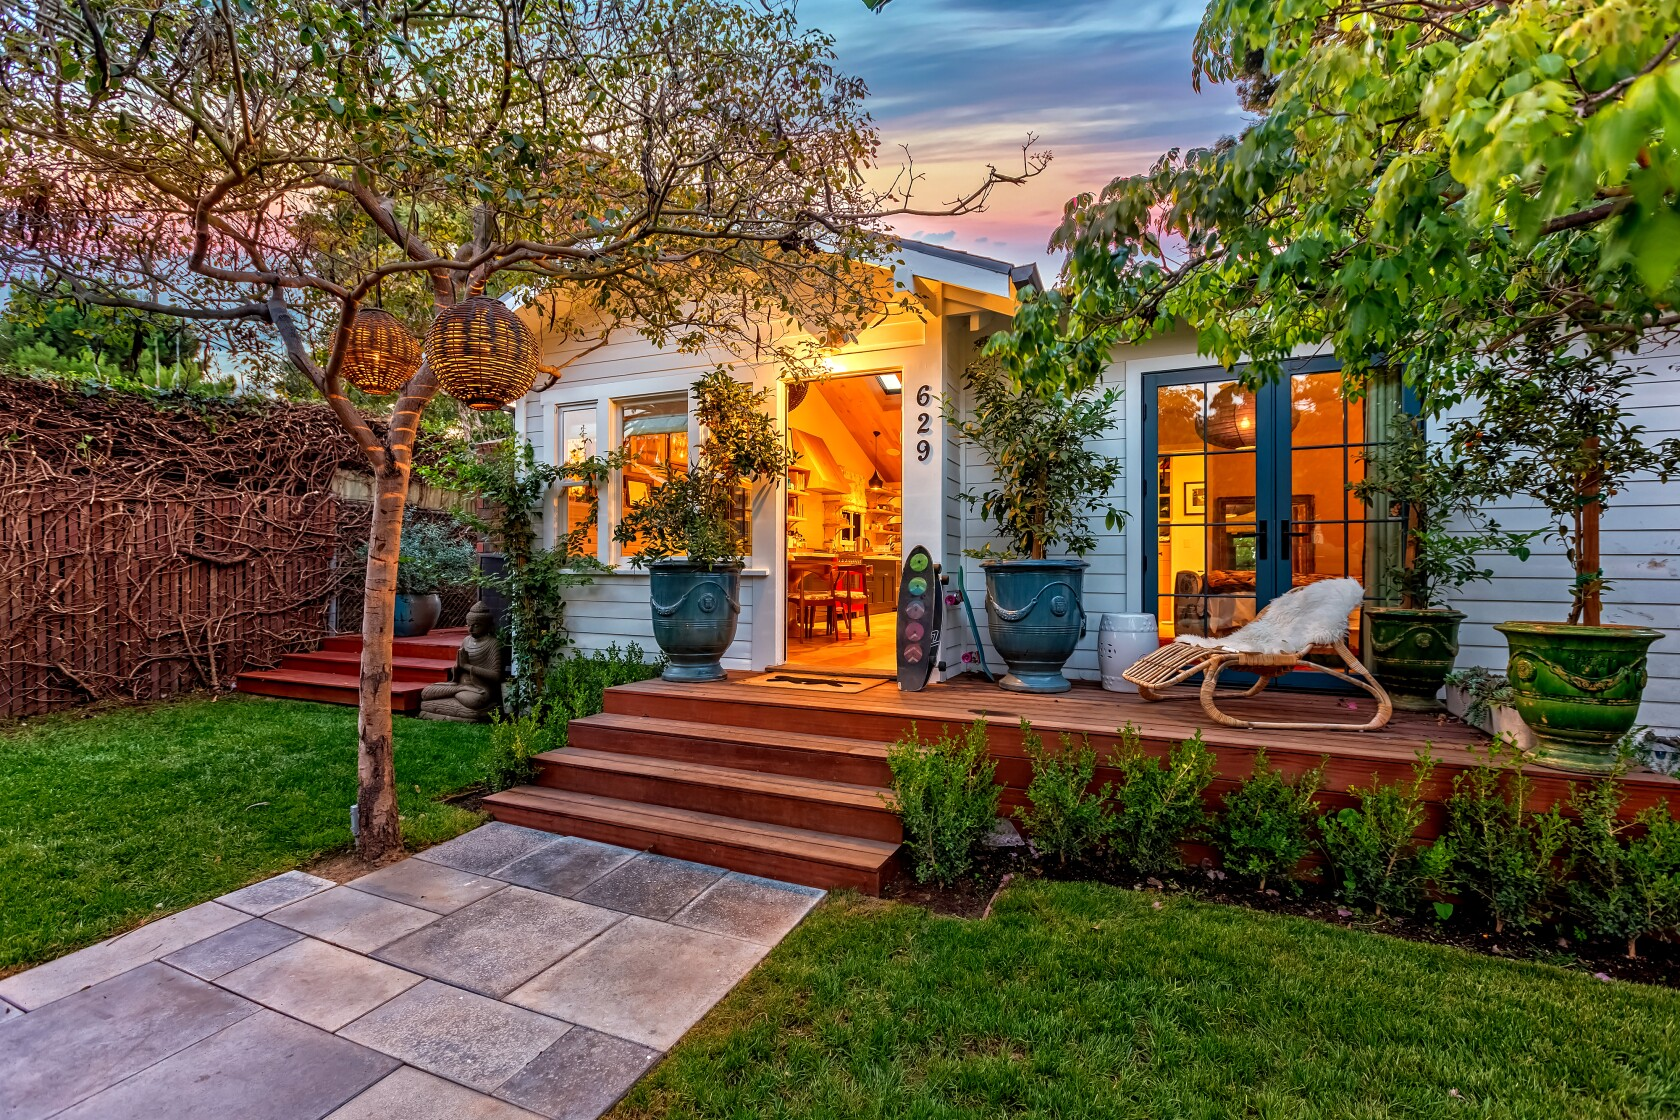 Venice cottages transformed from dowdy to boho chic